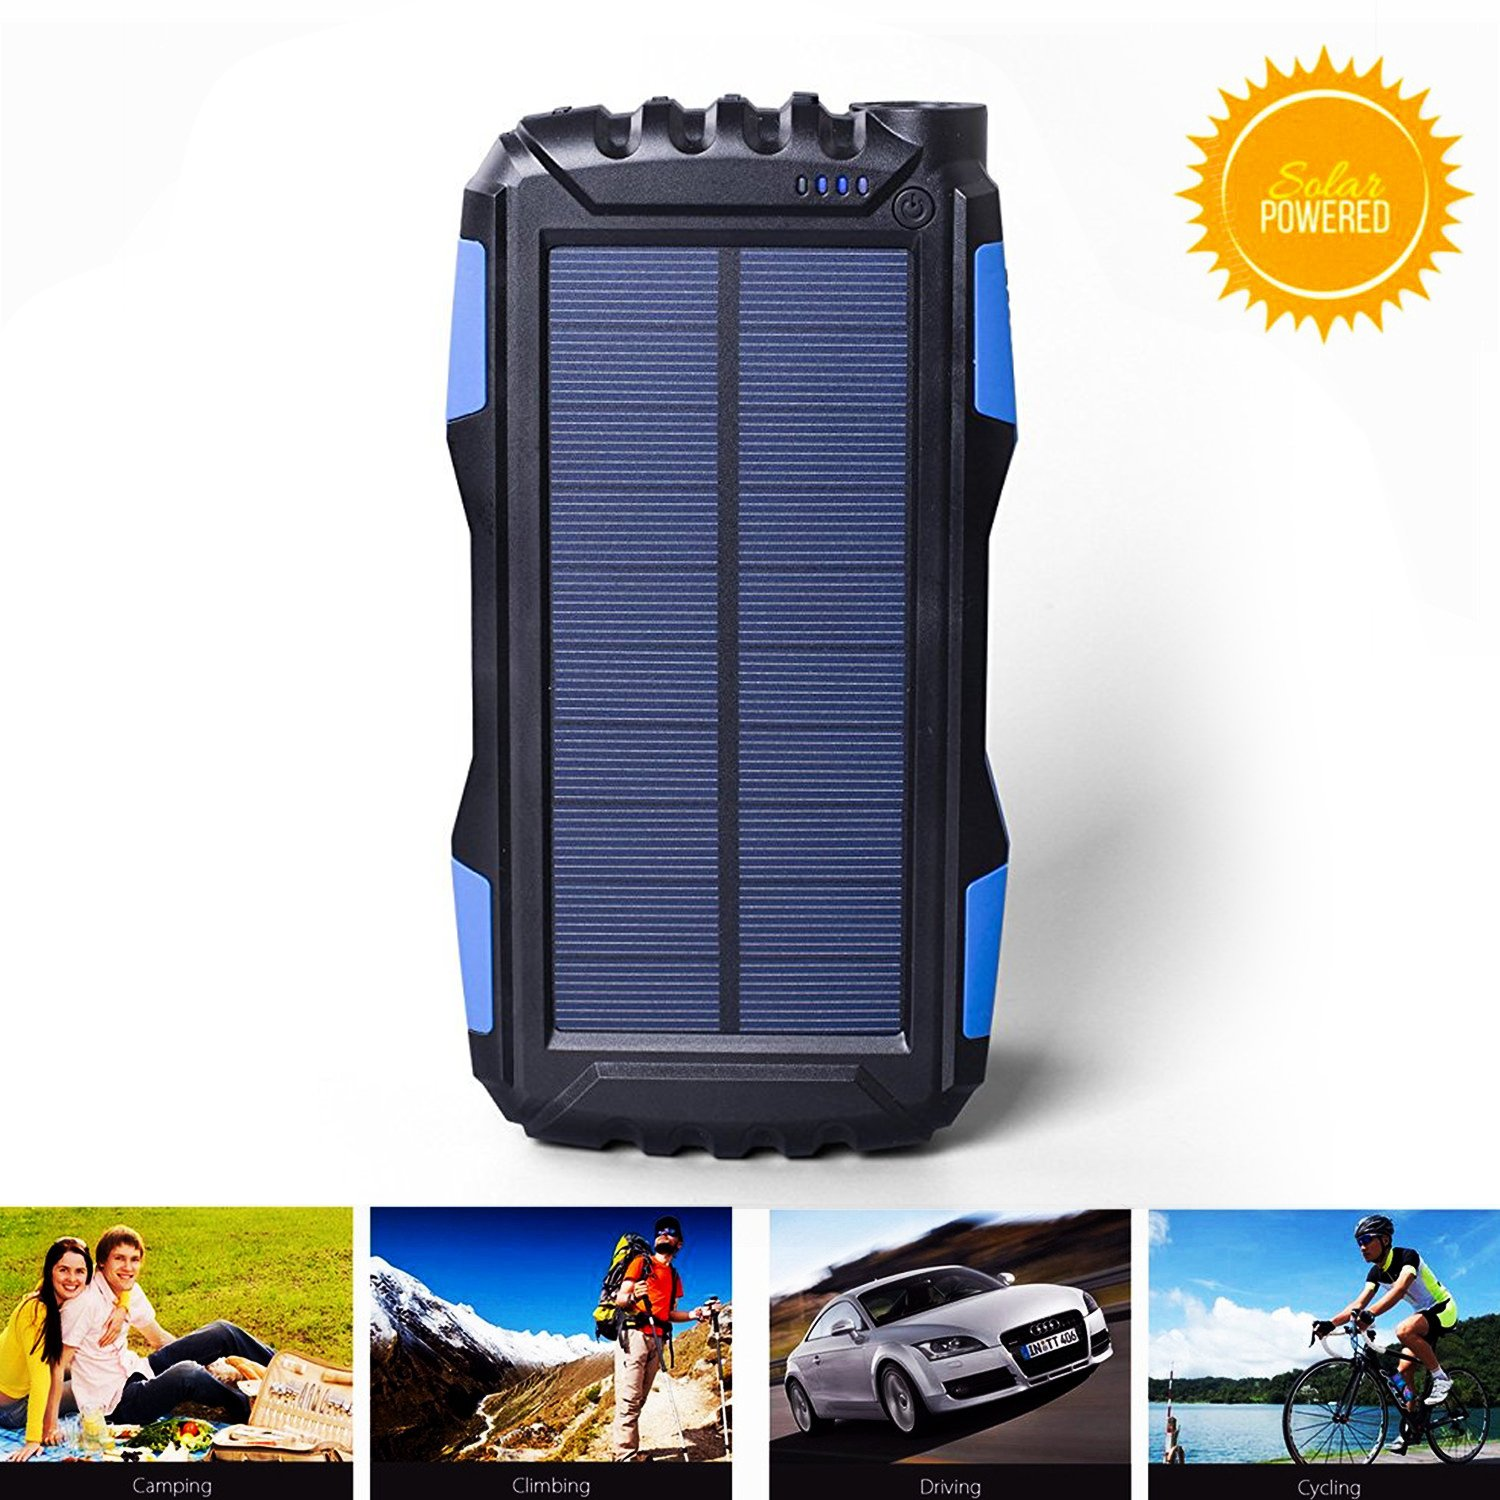 Solar Charger,Kiizon 25000mAh Portable Solar Power Bank Waterproof External Battery Powerd Pack Dual 2.1A USB Port,Solar Phone Chargers with Flashlight for iphone,android,cell phone,Electronic Devices by kiizon